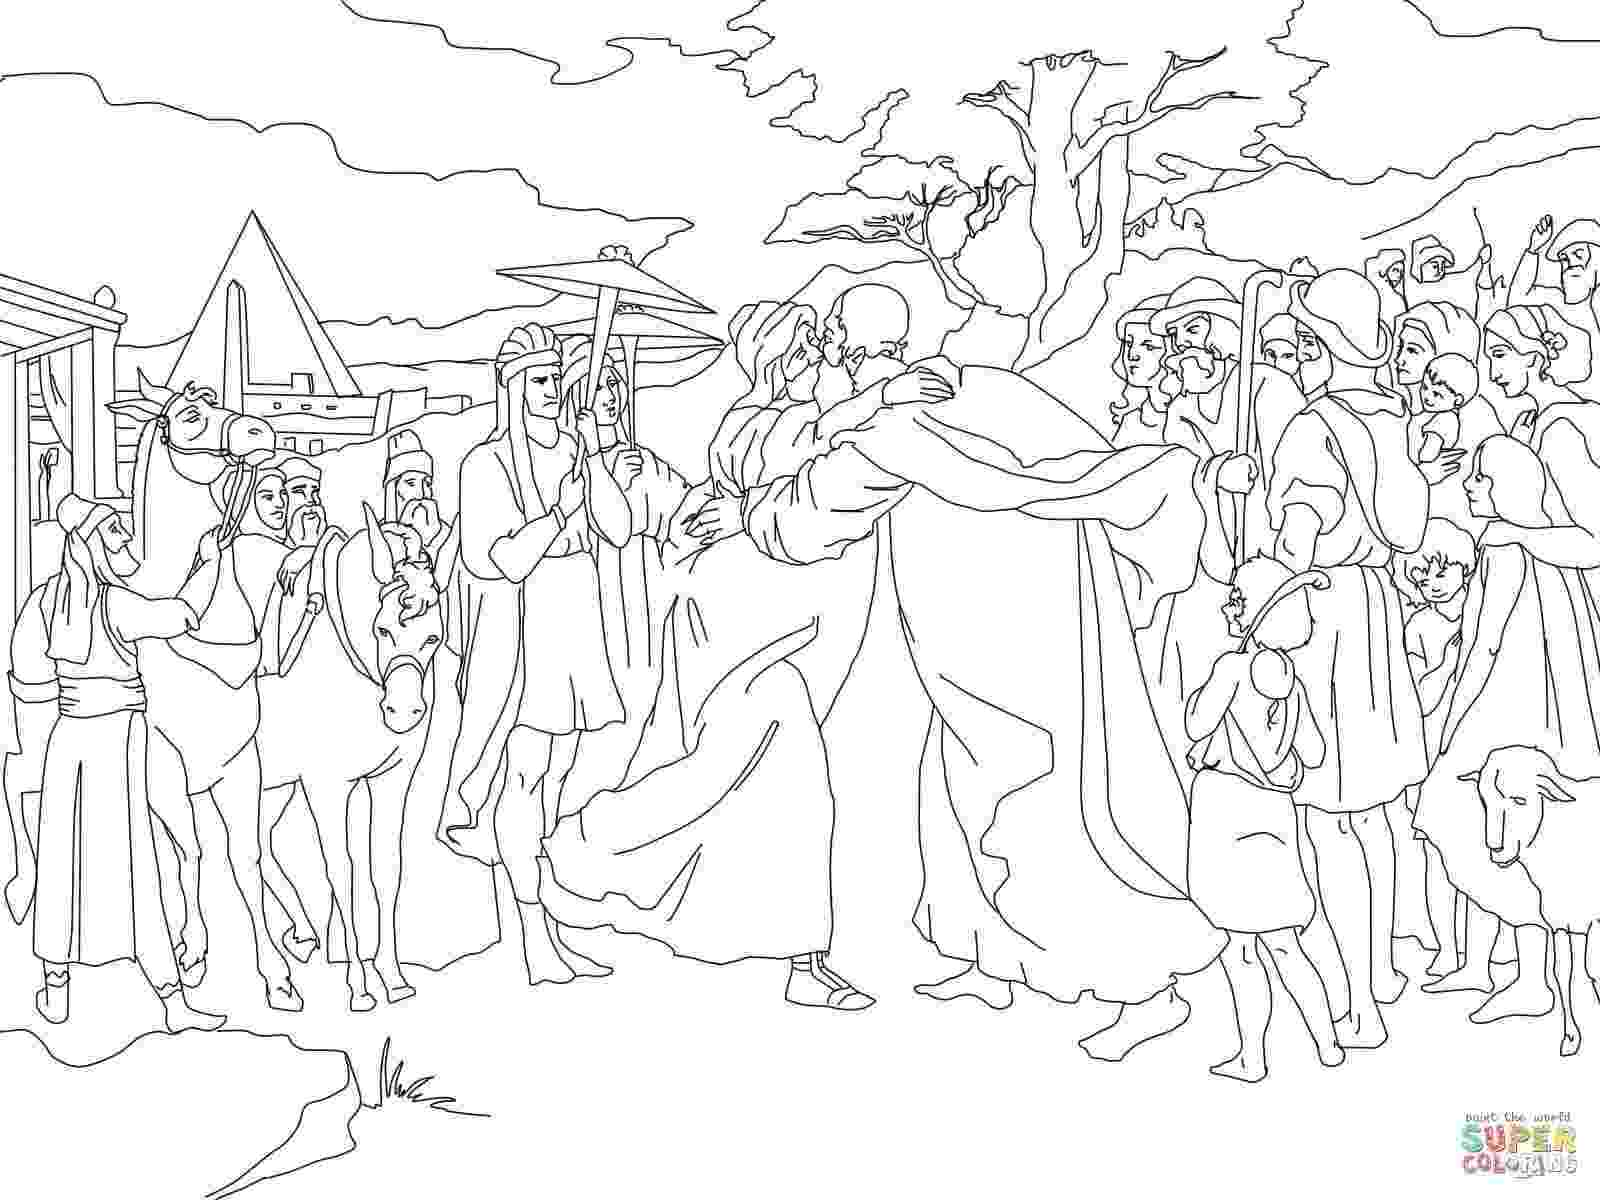 joseph and the amazing technicolor dreamcoat coloring pages joseph et lincroyable coloriage dreamcoat en technicolor w the pages joseph technicolor amazing dreamcoat and coloring